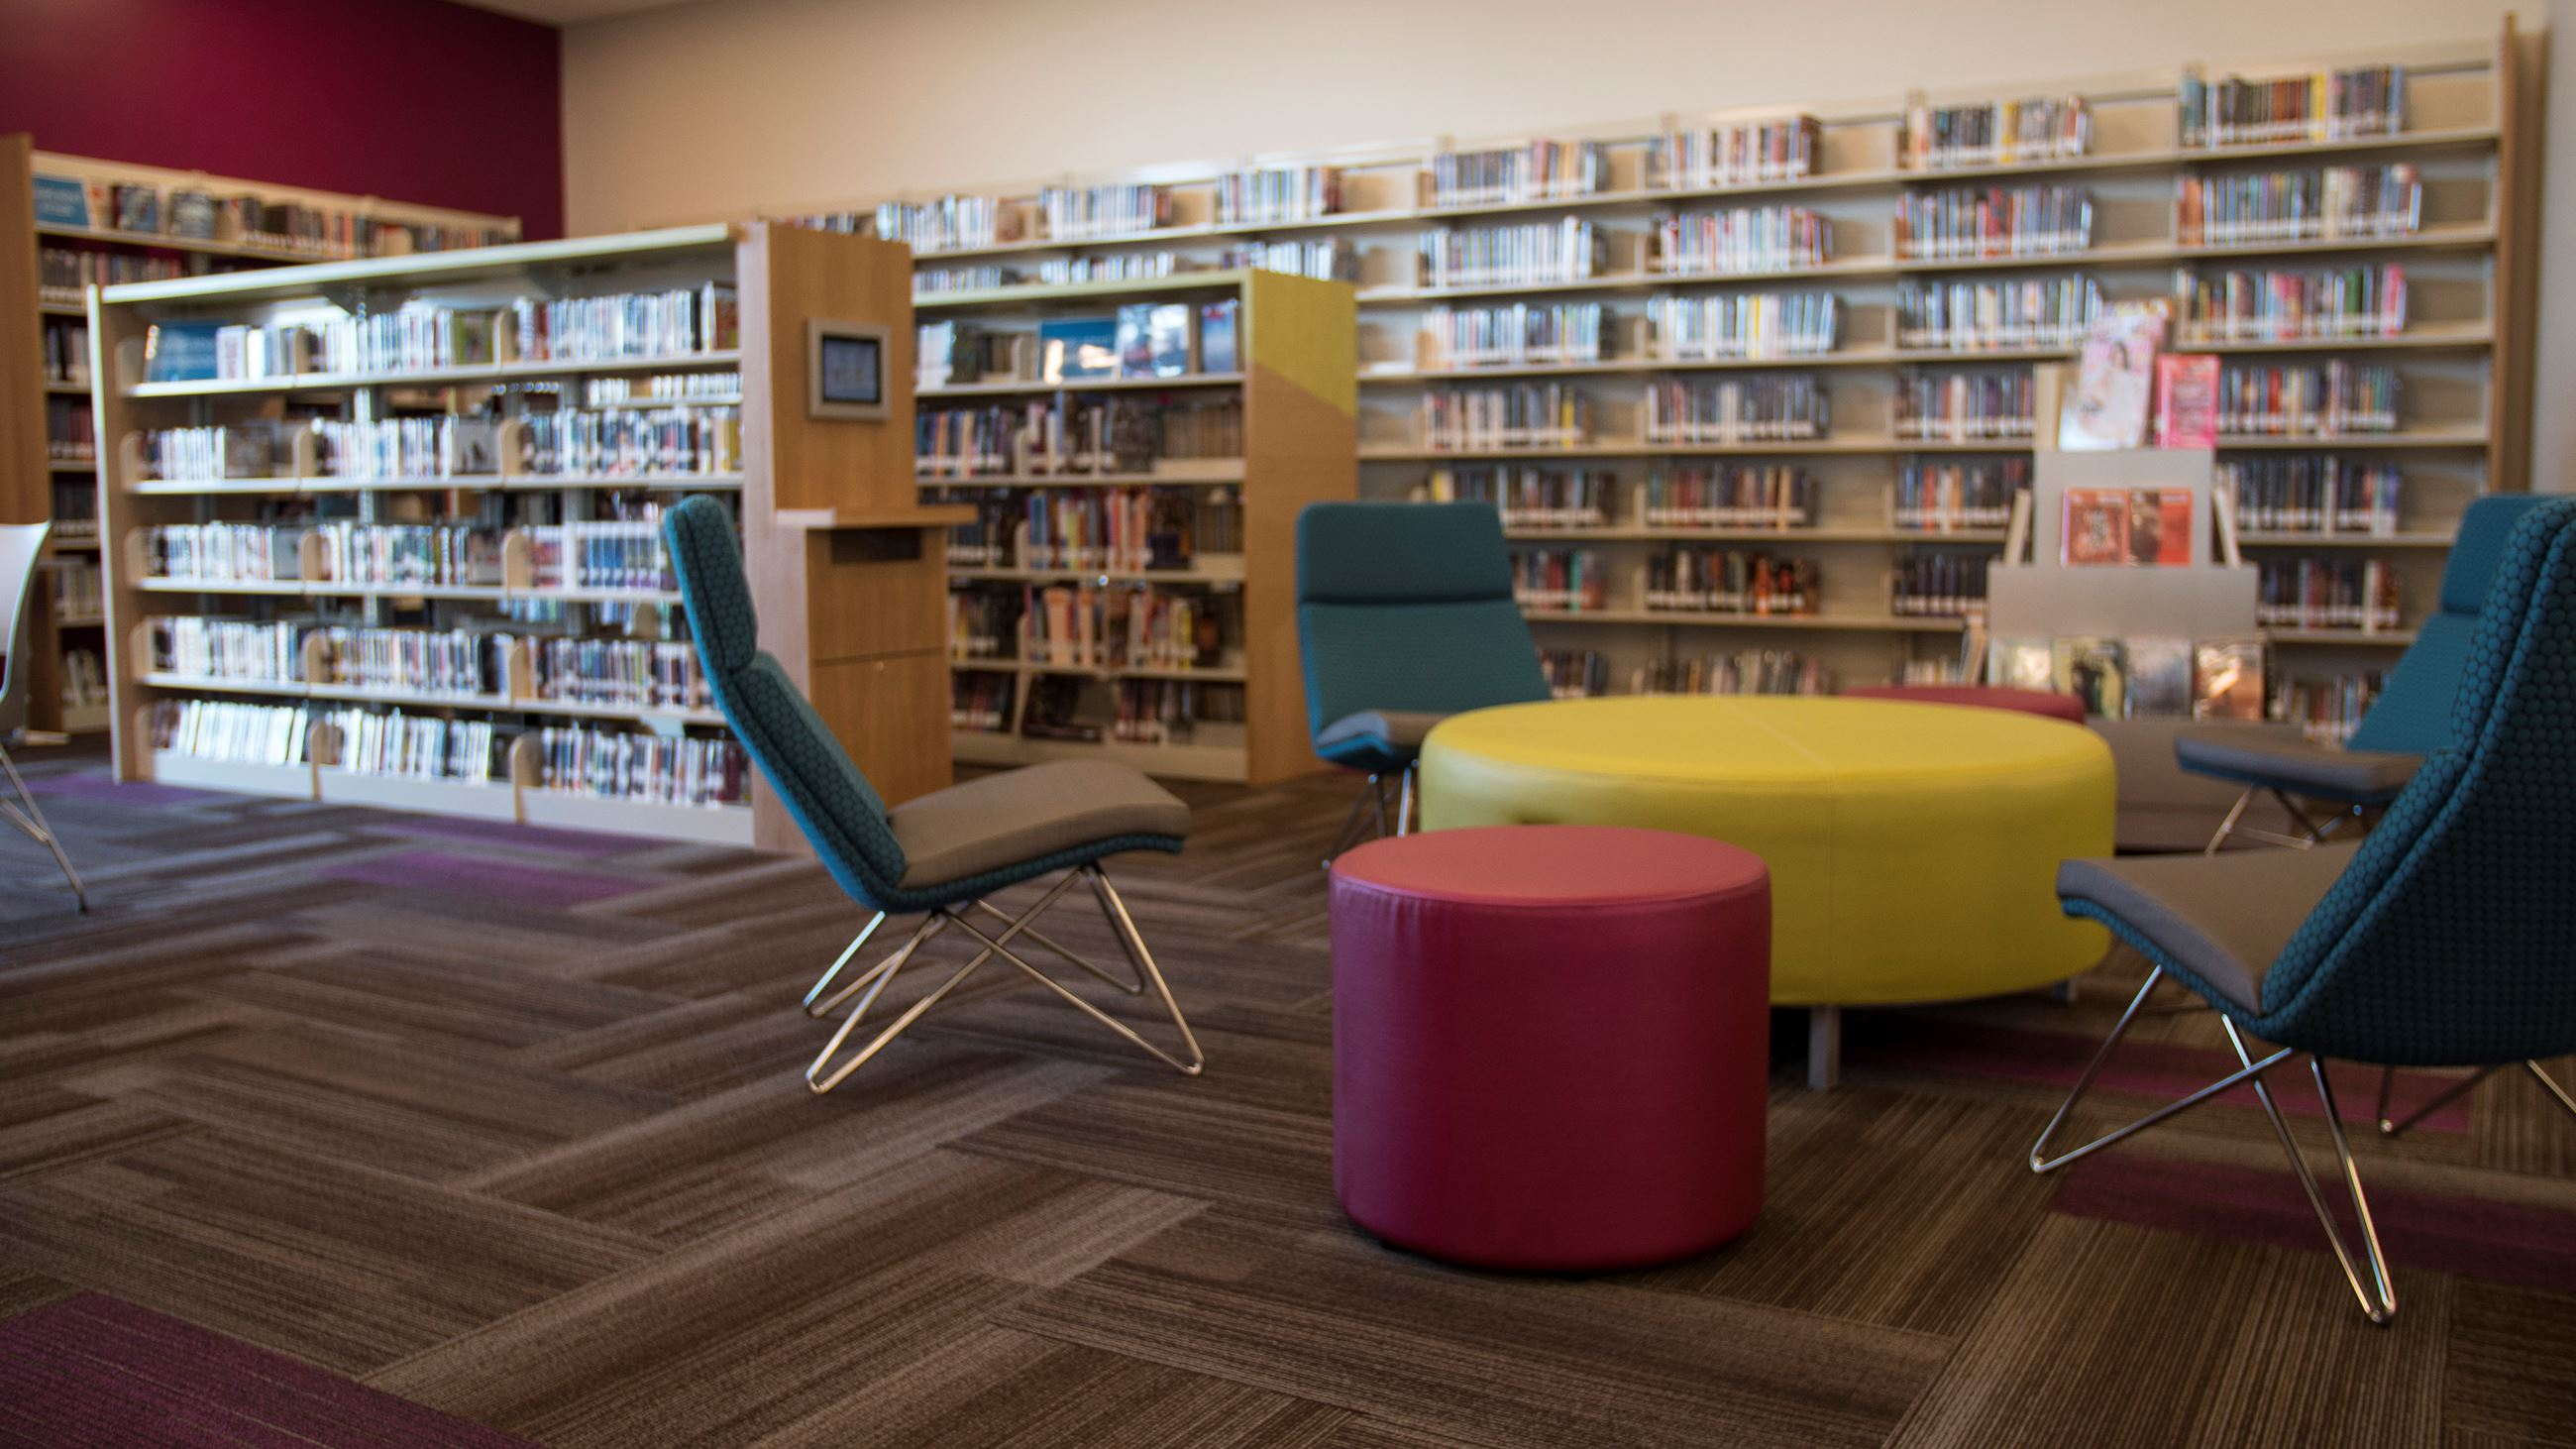 New Library Images_6